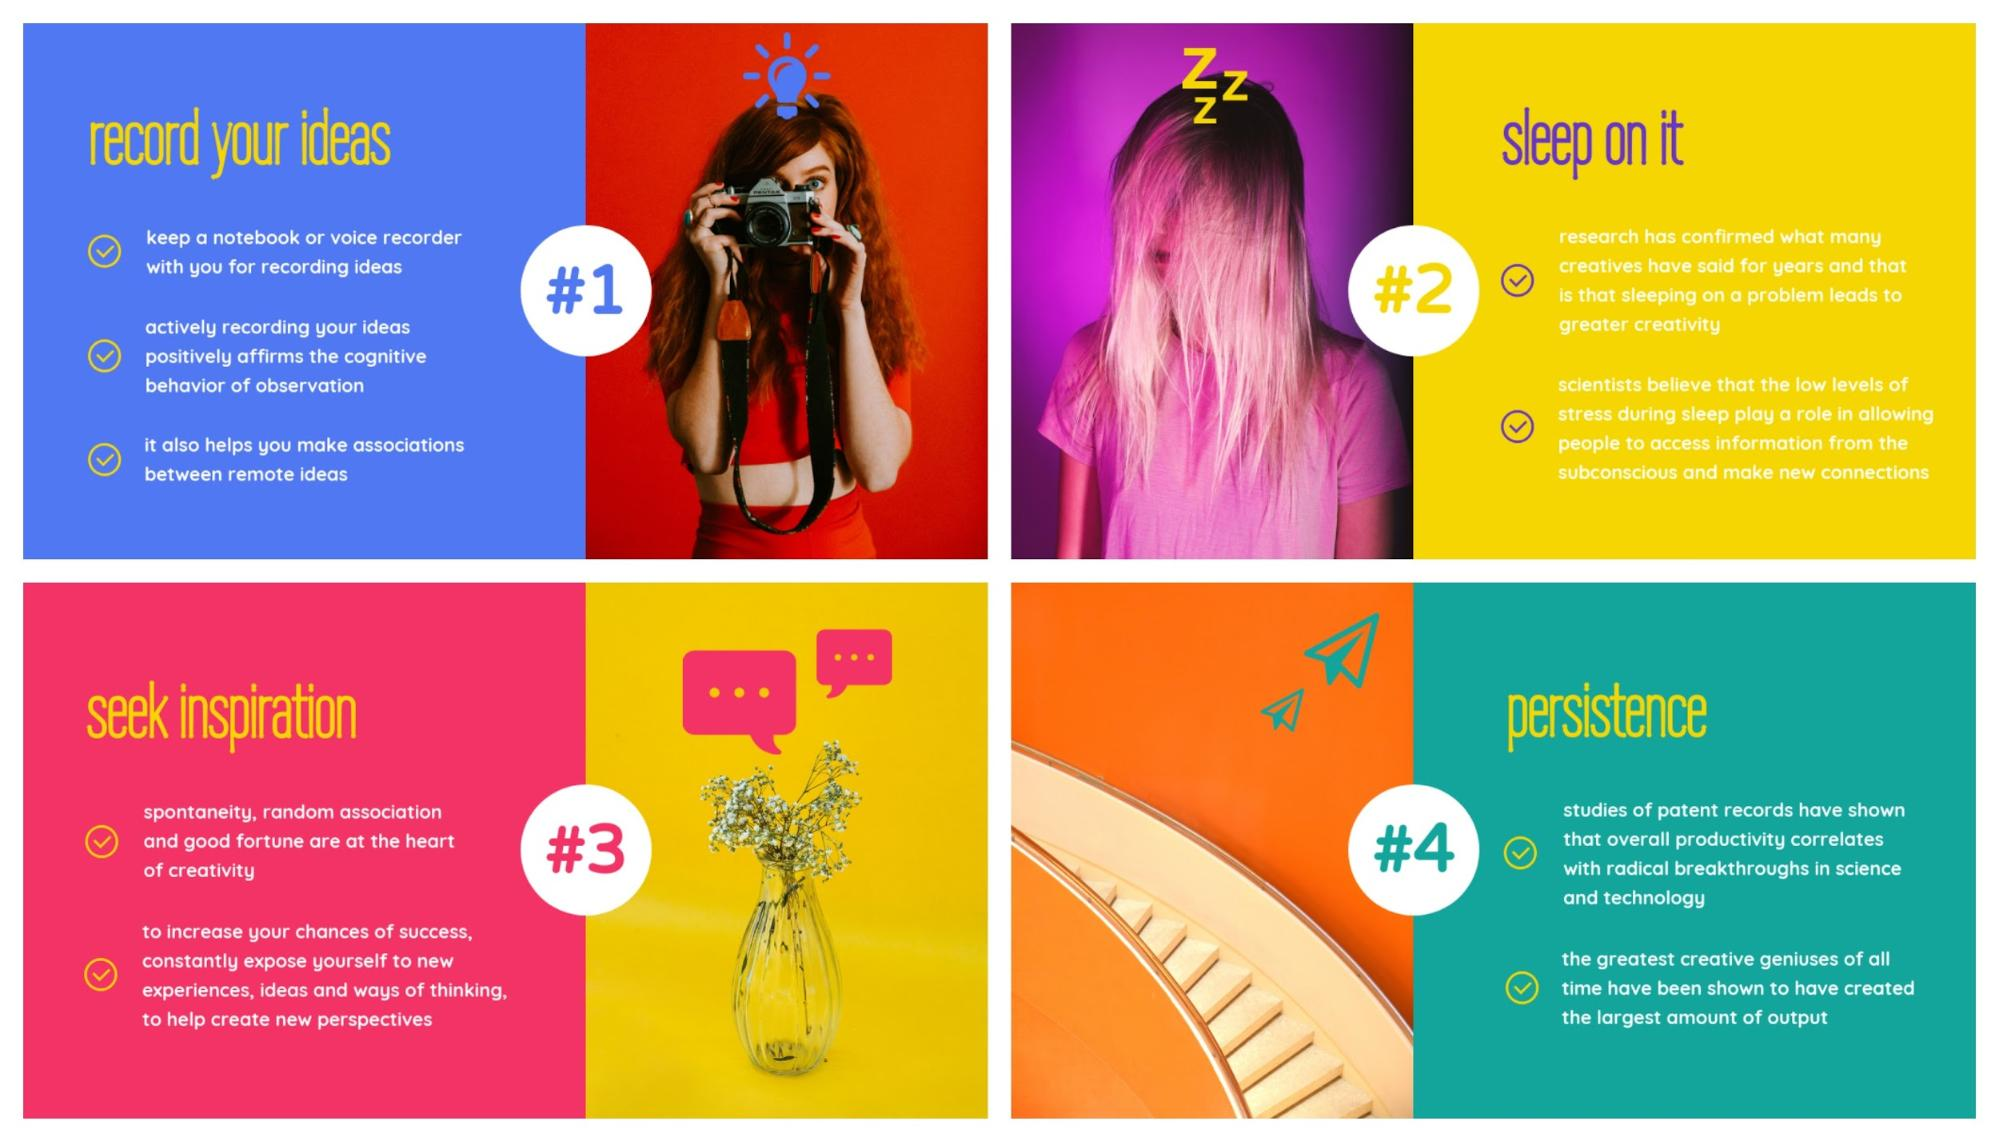 Graphic Design Trends 2019 - Vivid Colors